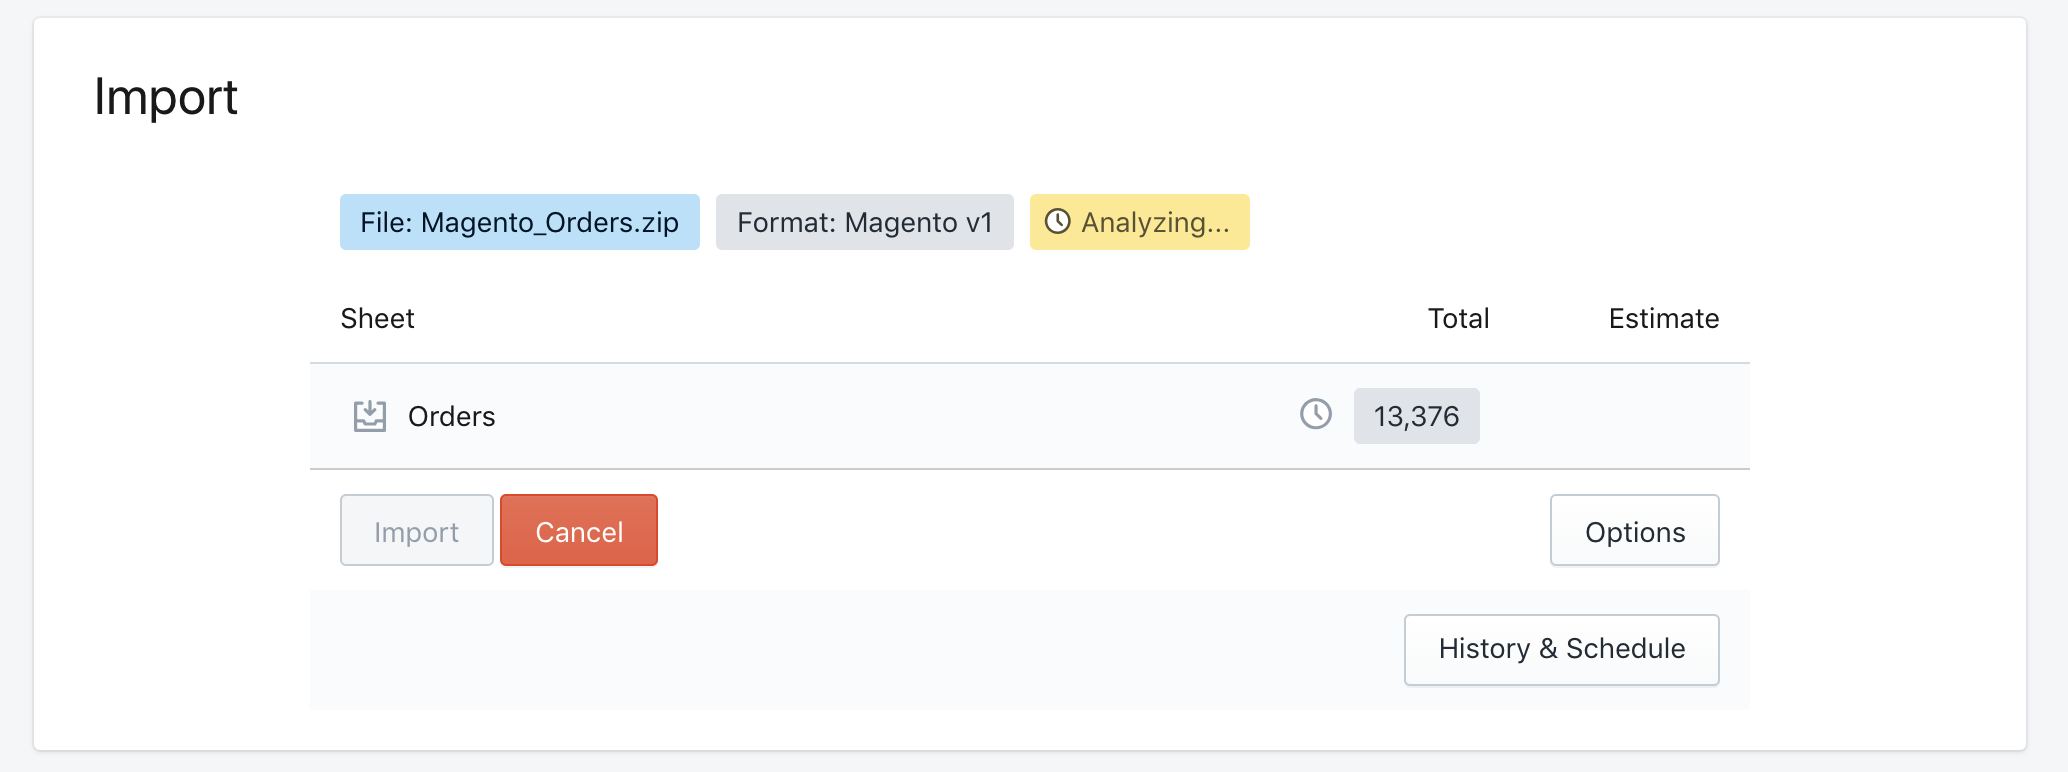 Migrate Orders from Magento to Shopify - Excelify App